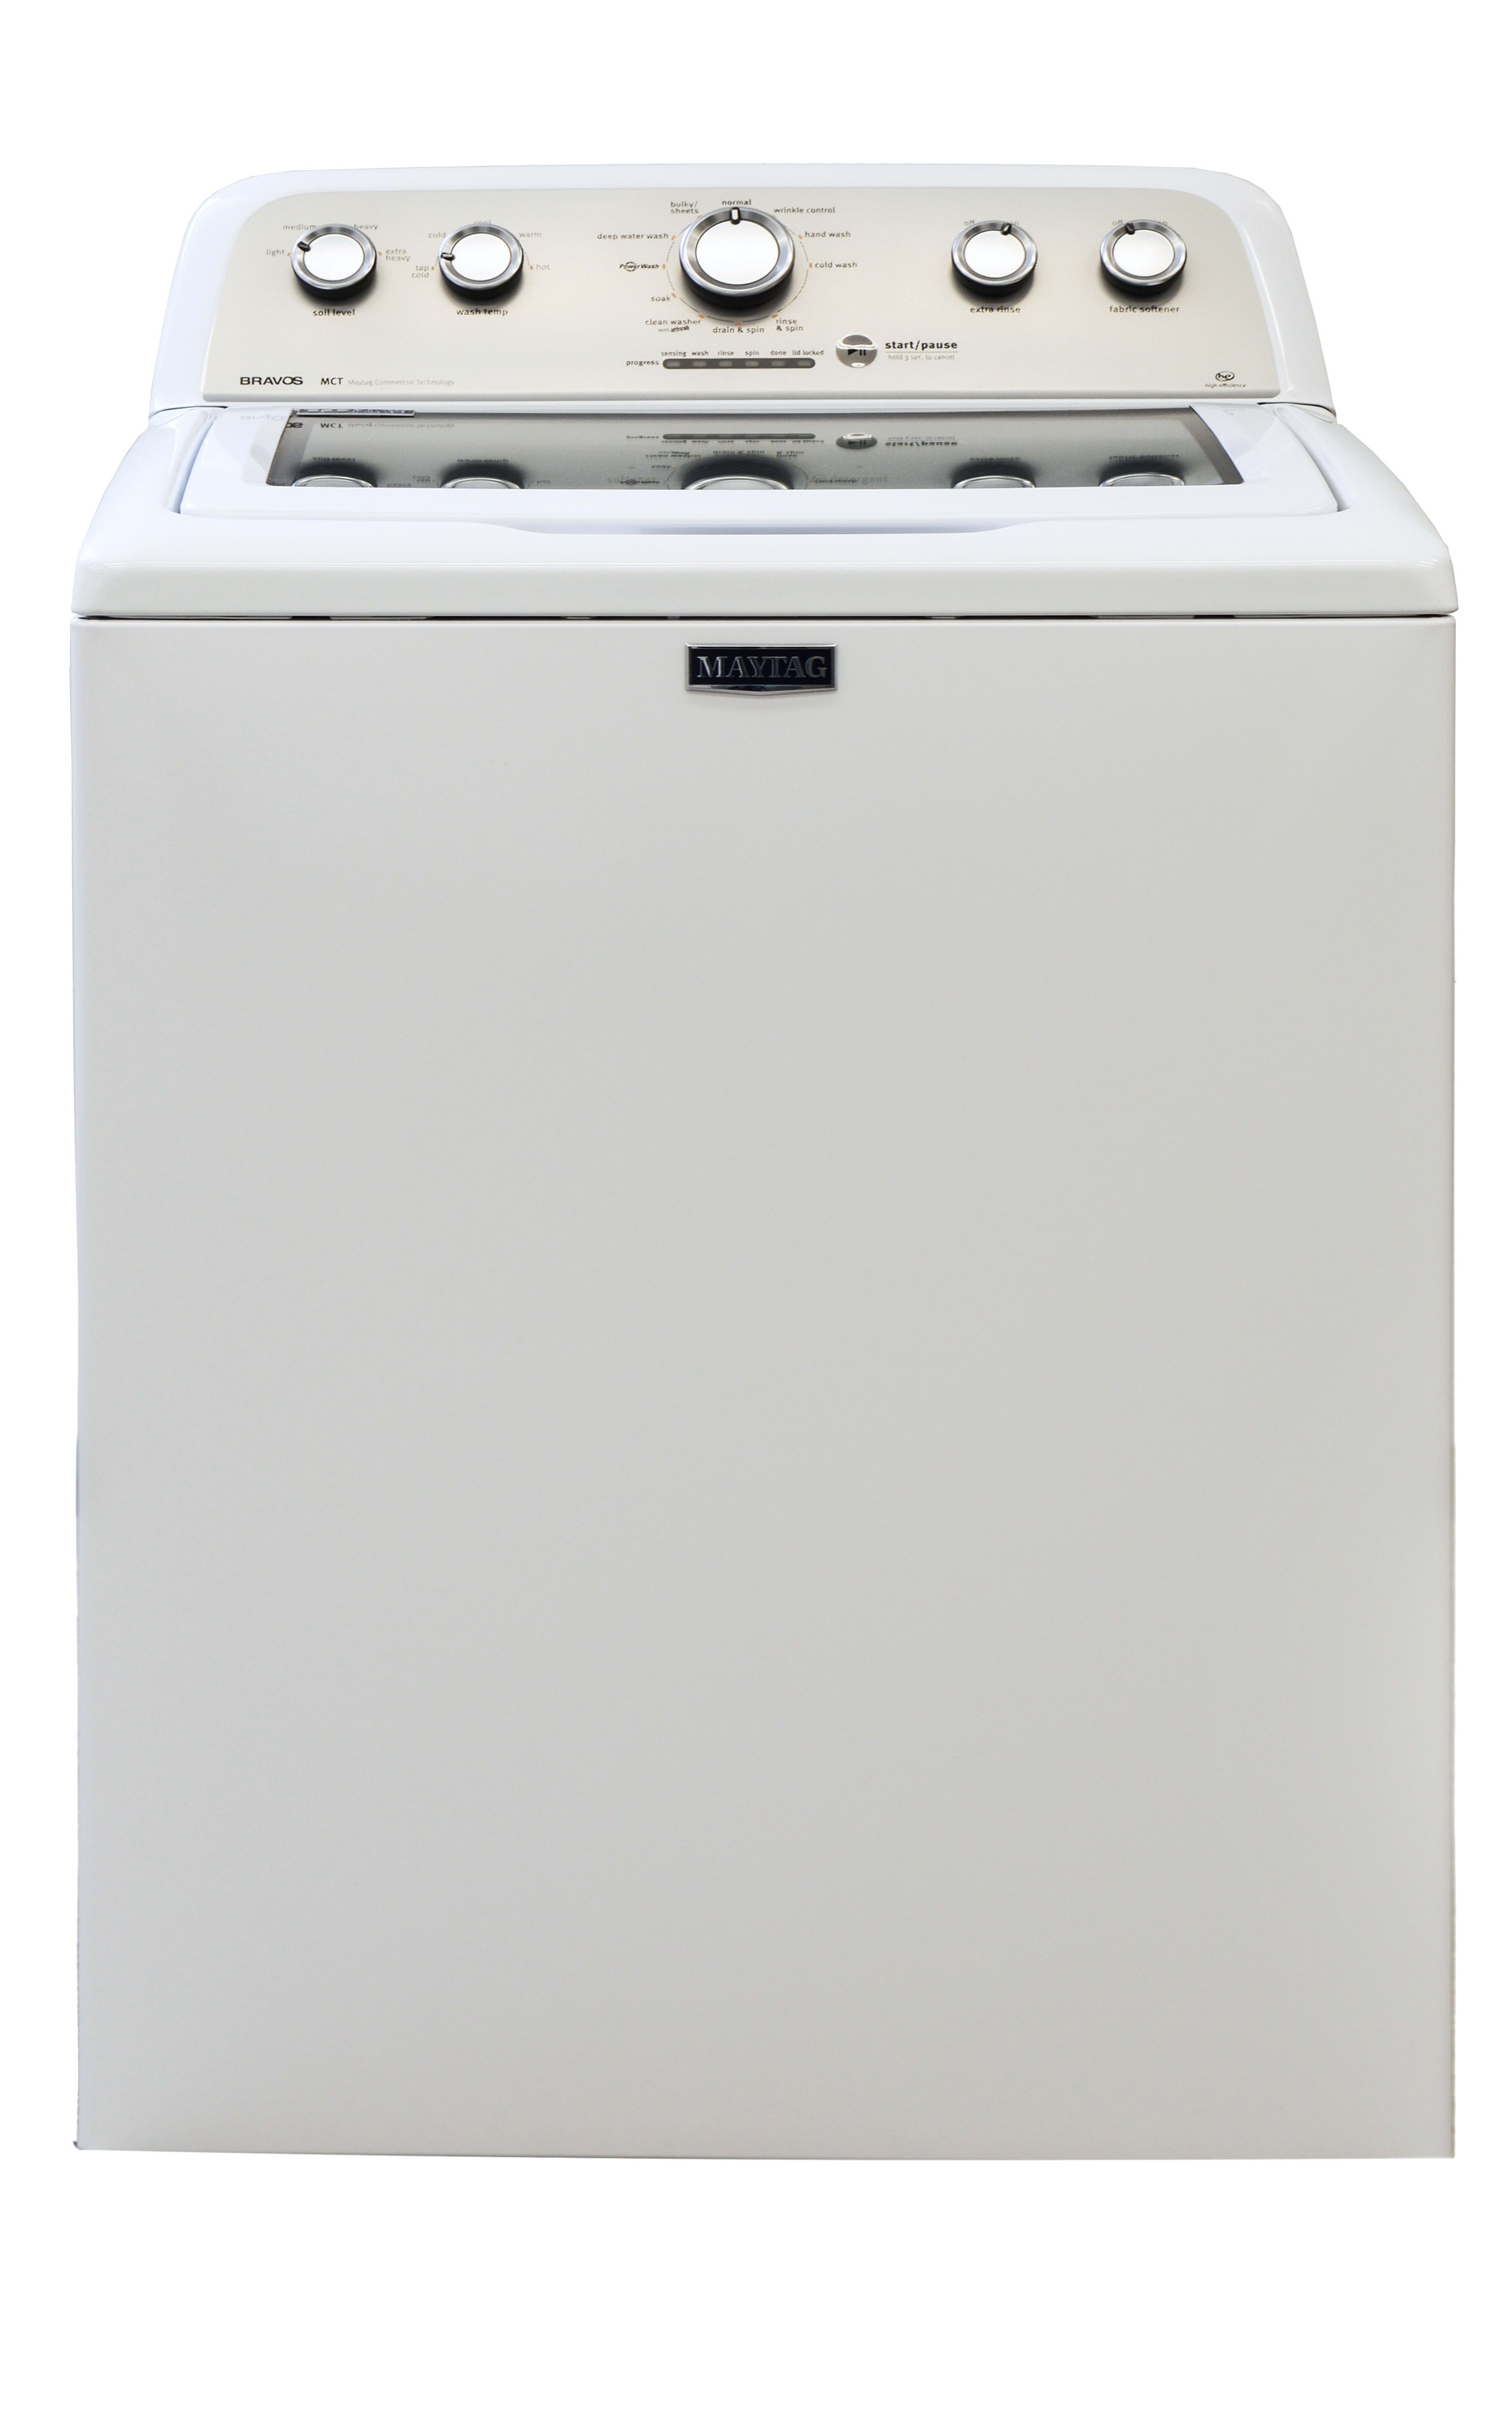 The Maytag MVWX655DW looks just like your mother's washer.